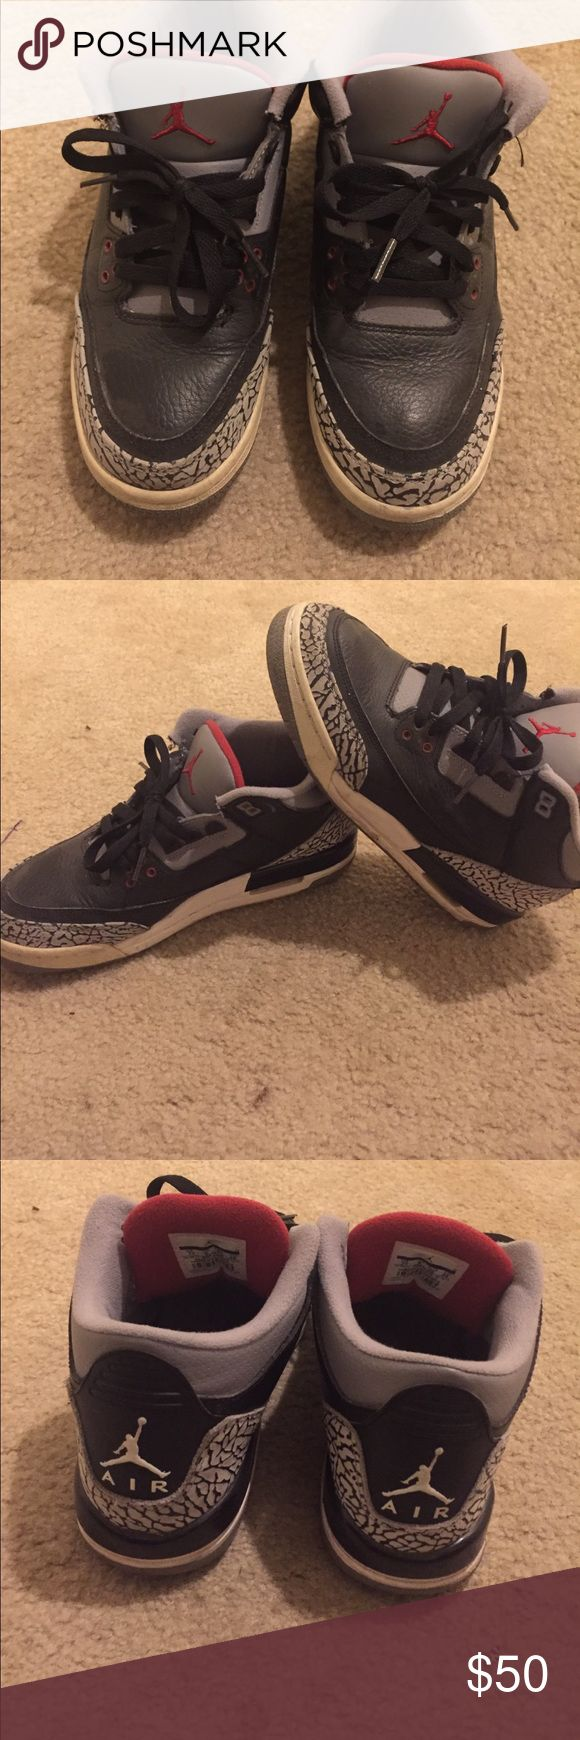 Jordan black cement 3s Judge condition by pictures. Beaters but fun for restoration. 2011 Air Jordan Shoes Athletic Shoes